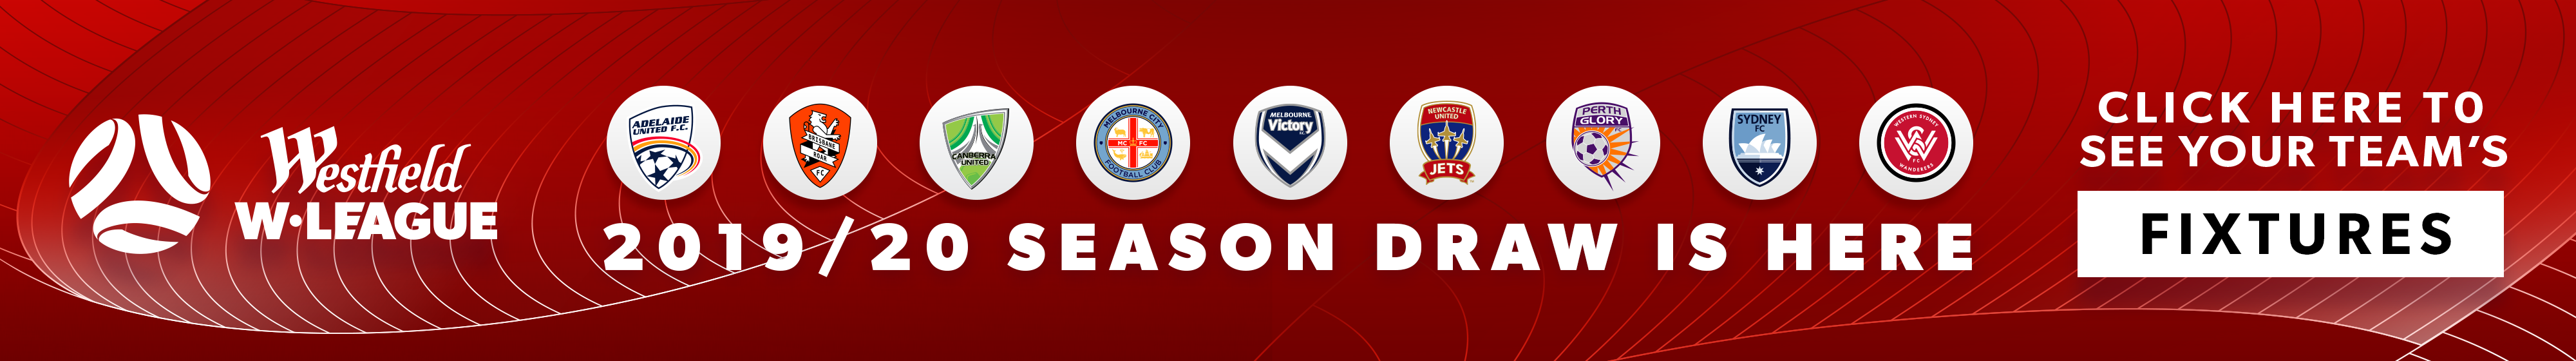 Westfield W-League 2019/20 Season Draw Thin Banner